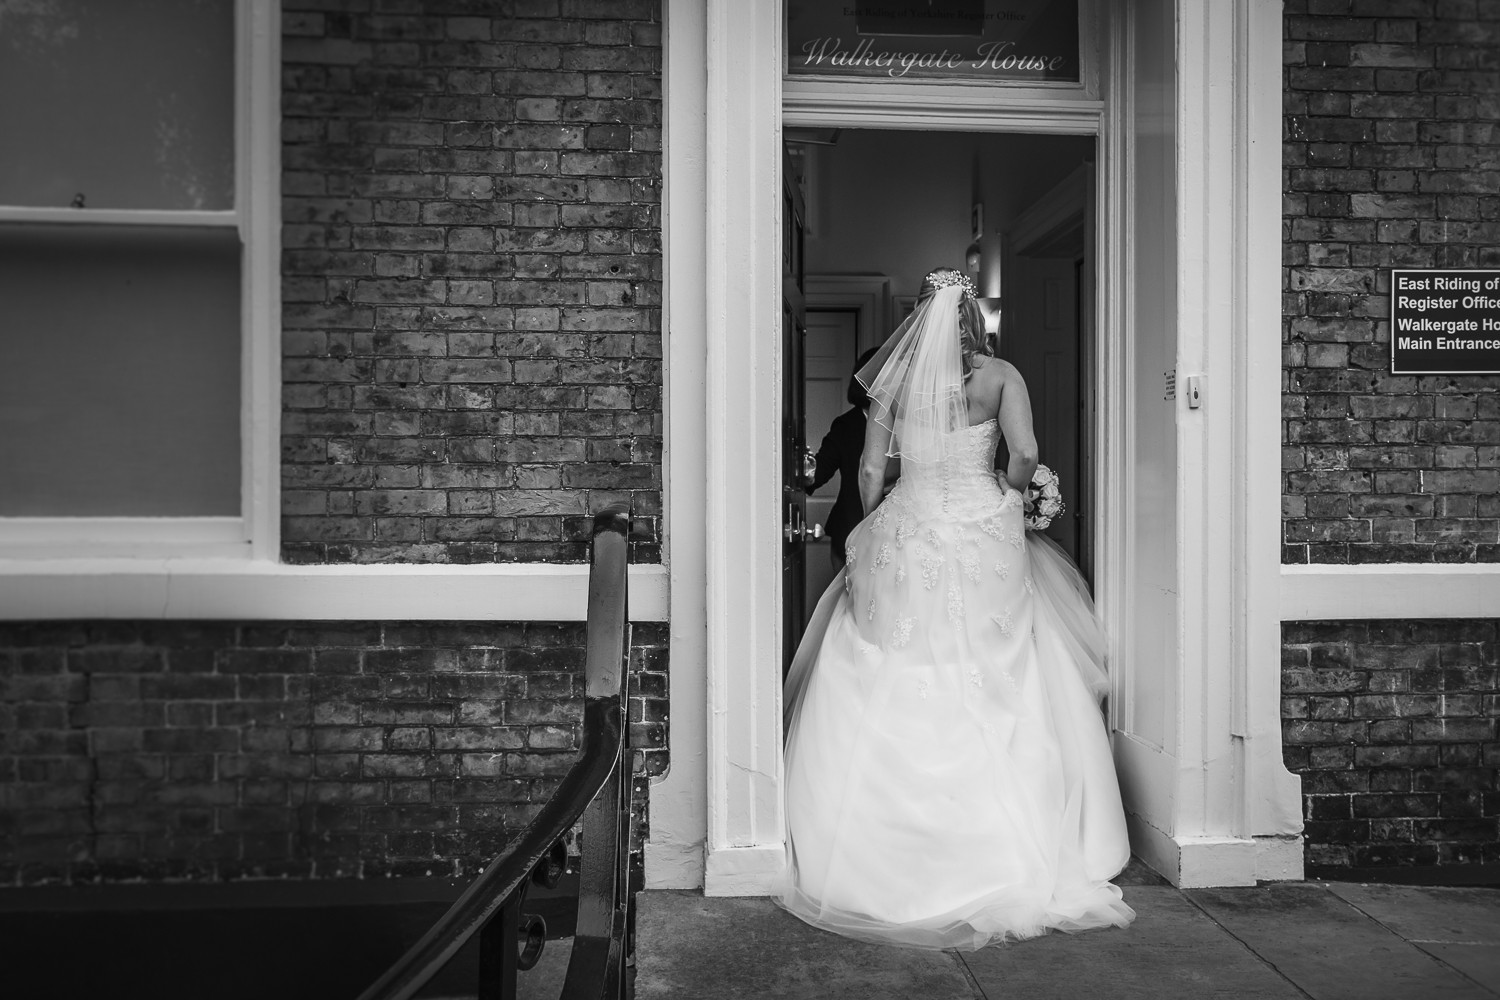 A bride to be enters Beverley Registry Office. We see the back of her dress and veil.